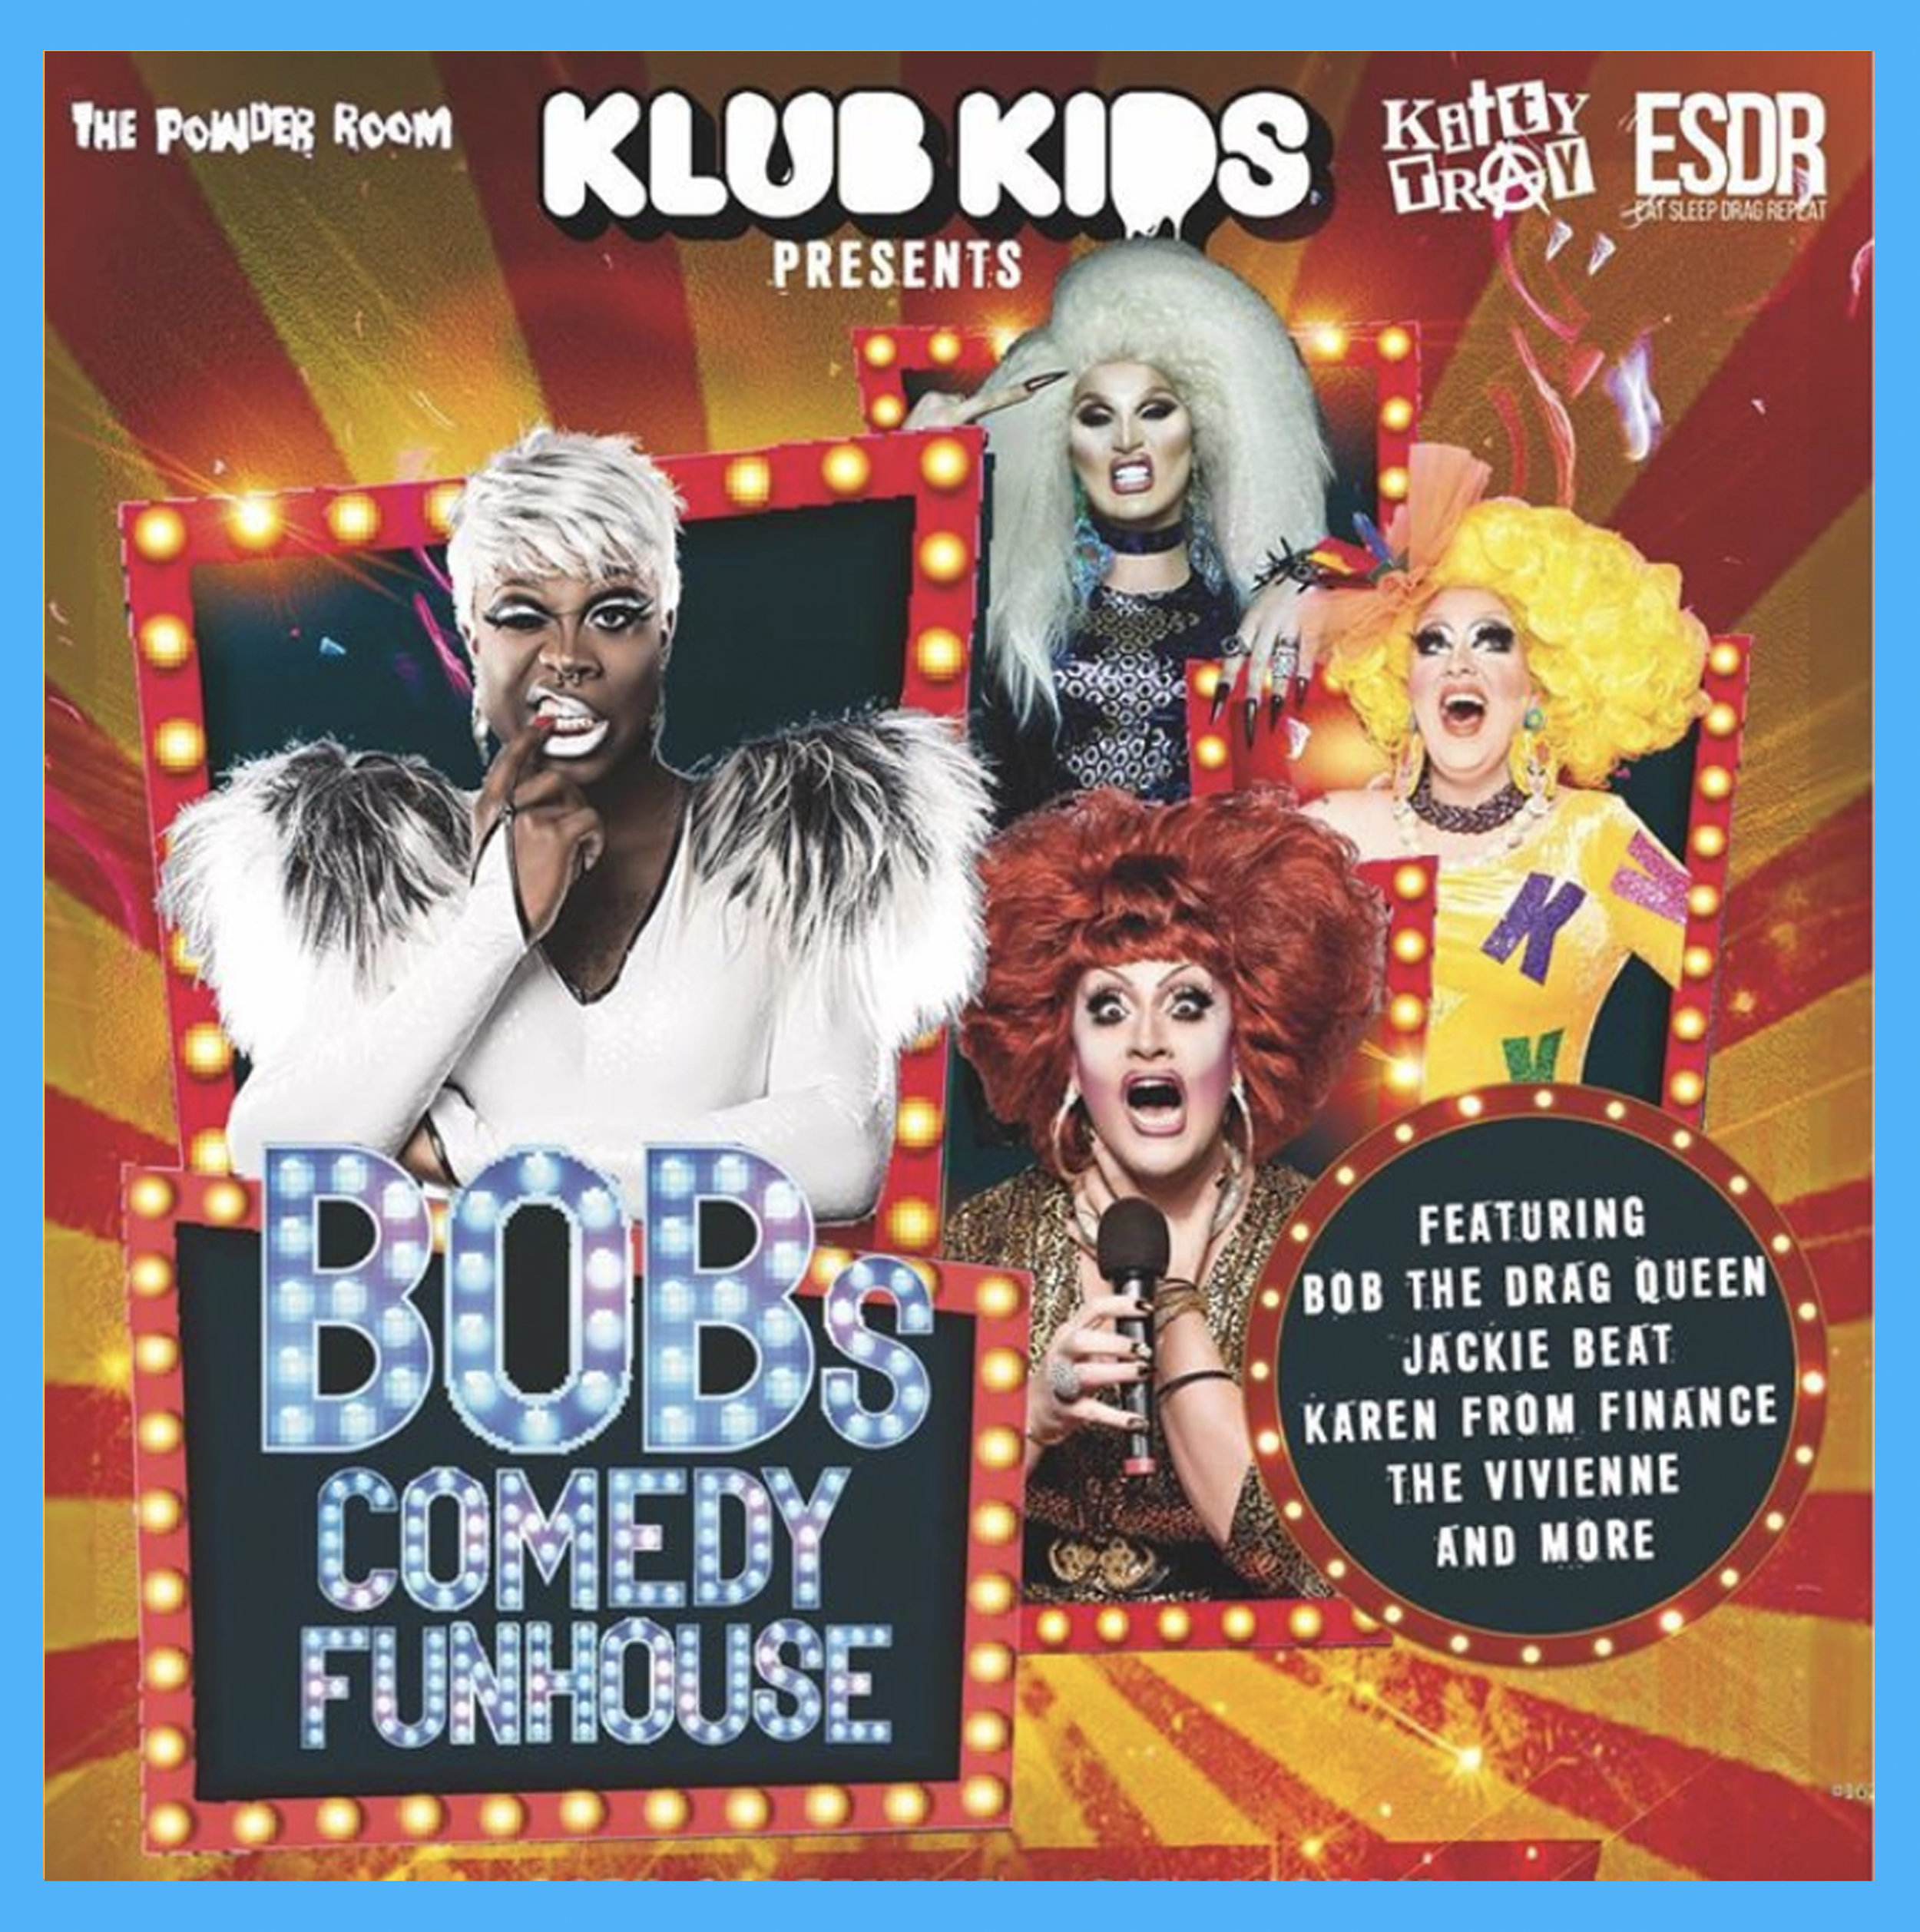 Nottingham, Uk - October 6th, 2019, 7:00pmComedy Fun HouseA comedy camp special show hosted and performances from Bob The Drag Queen, plus special performances from comedy legend Jackie Beat, Karen from Finance and Liverpool drag legend The Vivienne.Expect a show full of side splitting humour and some funhouse klub kids drama.